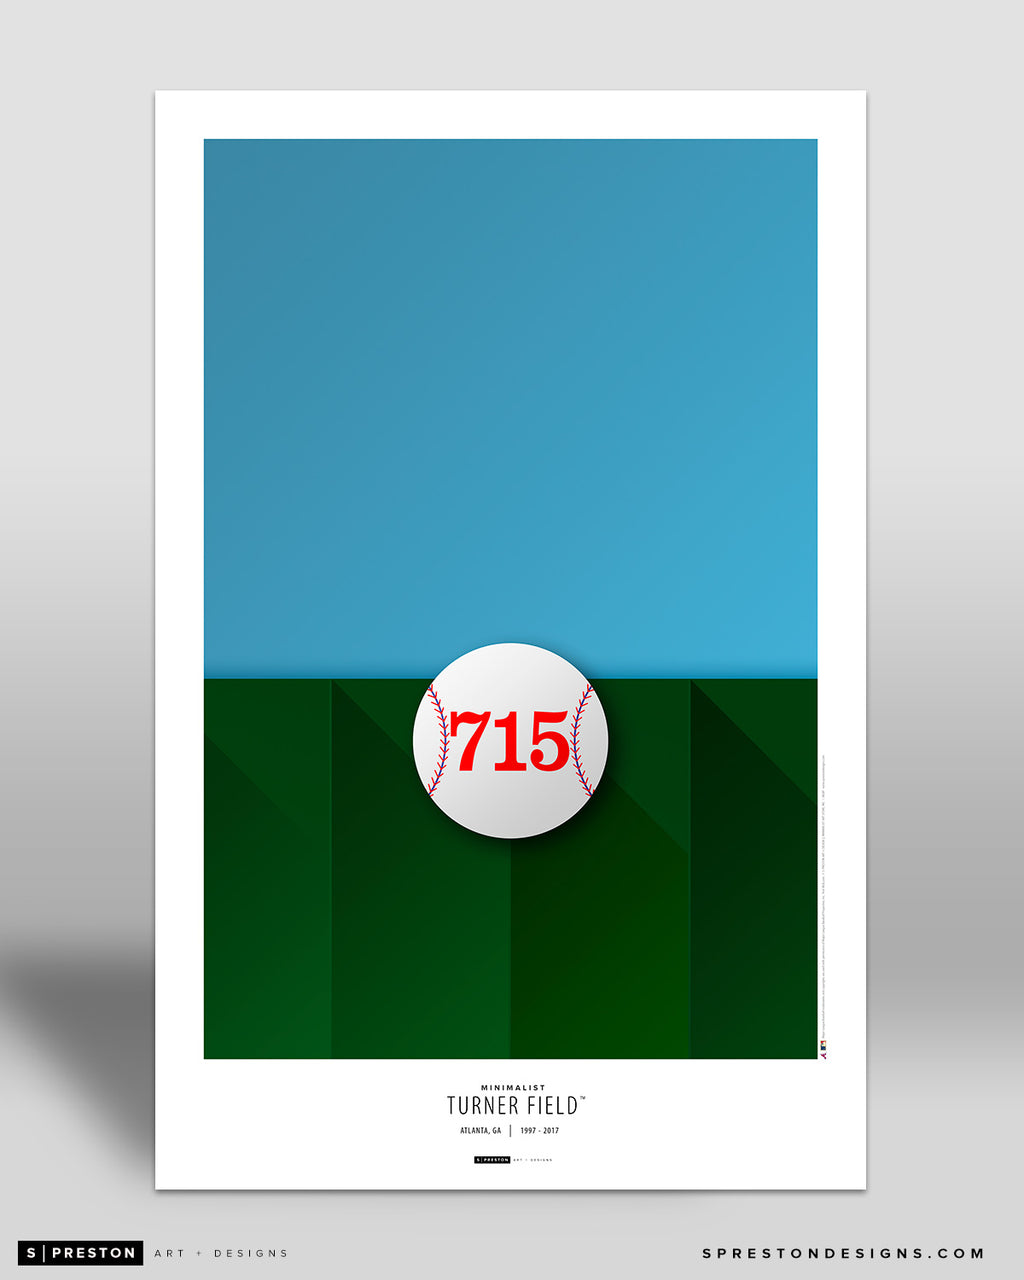 Minimalist Turner Field Poster Print Atlanta Braves - S Preston